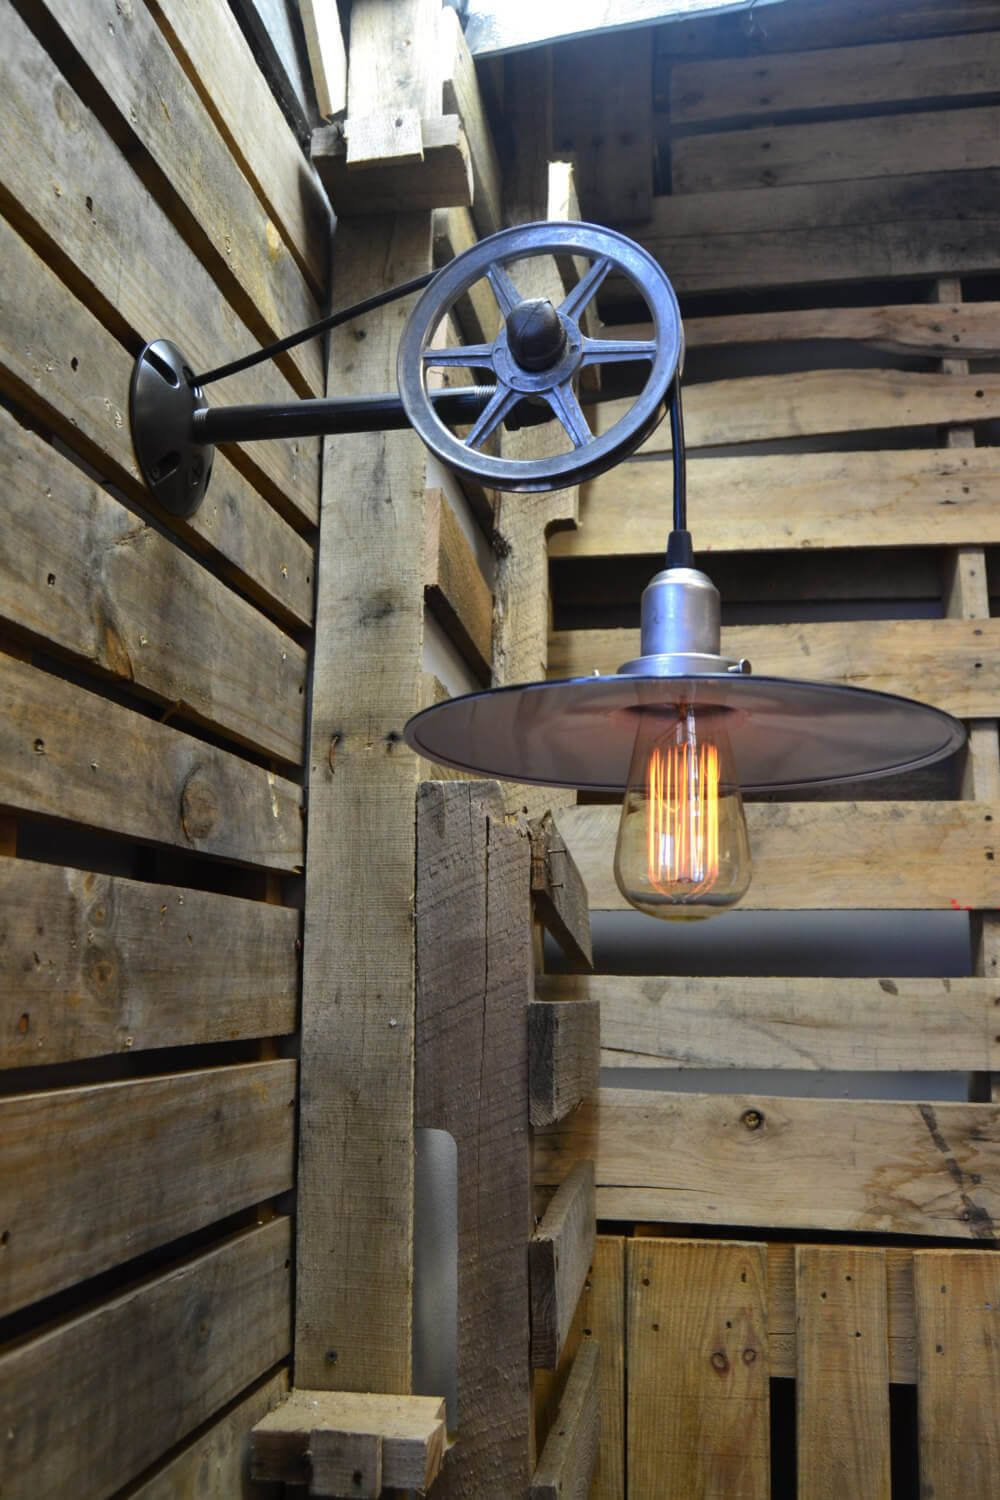 35 Industrial Lighting Ideas For Your Home Industrial Light Fixtures Diy Industrial Lighting Industrial Lighting